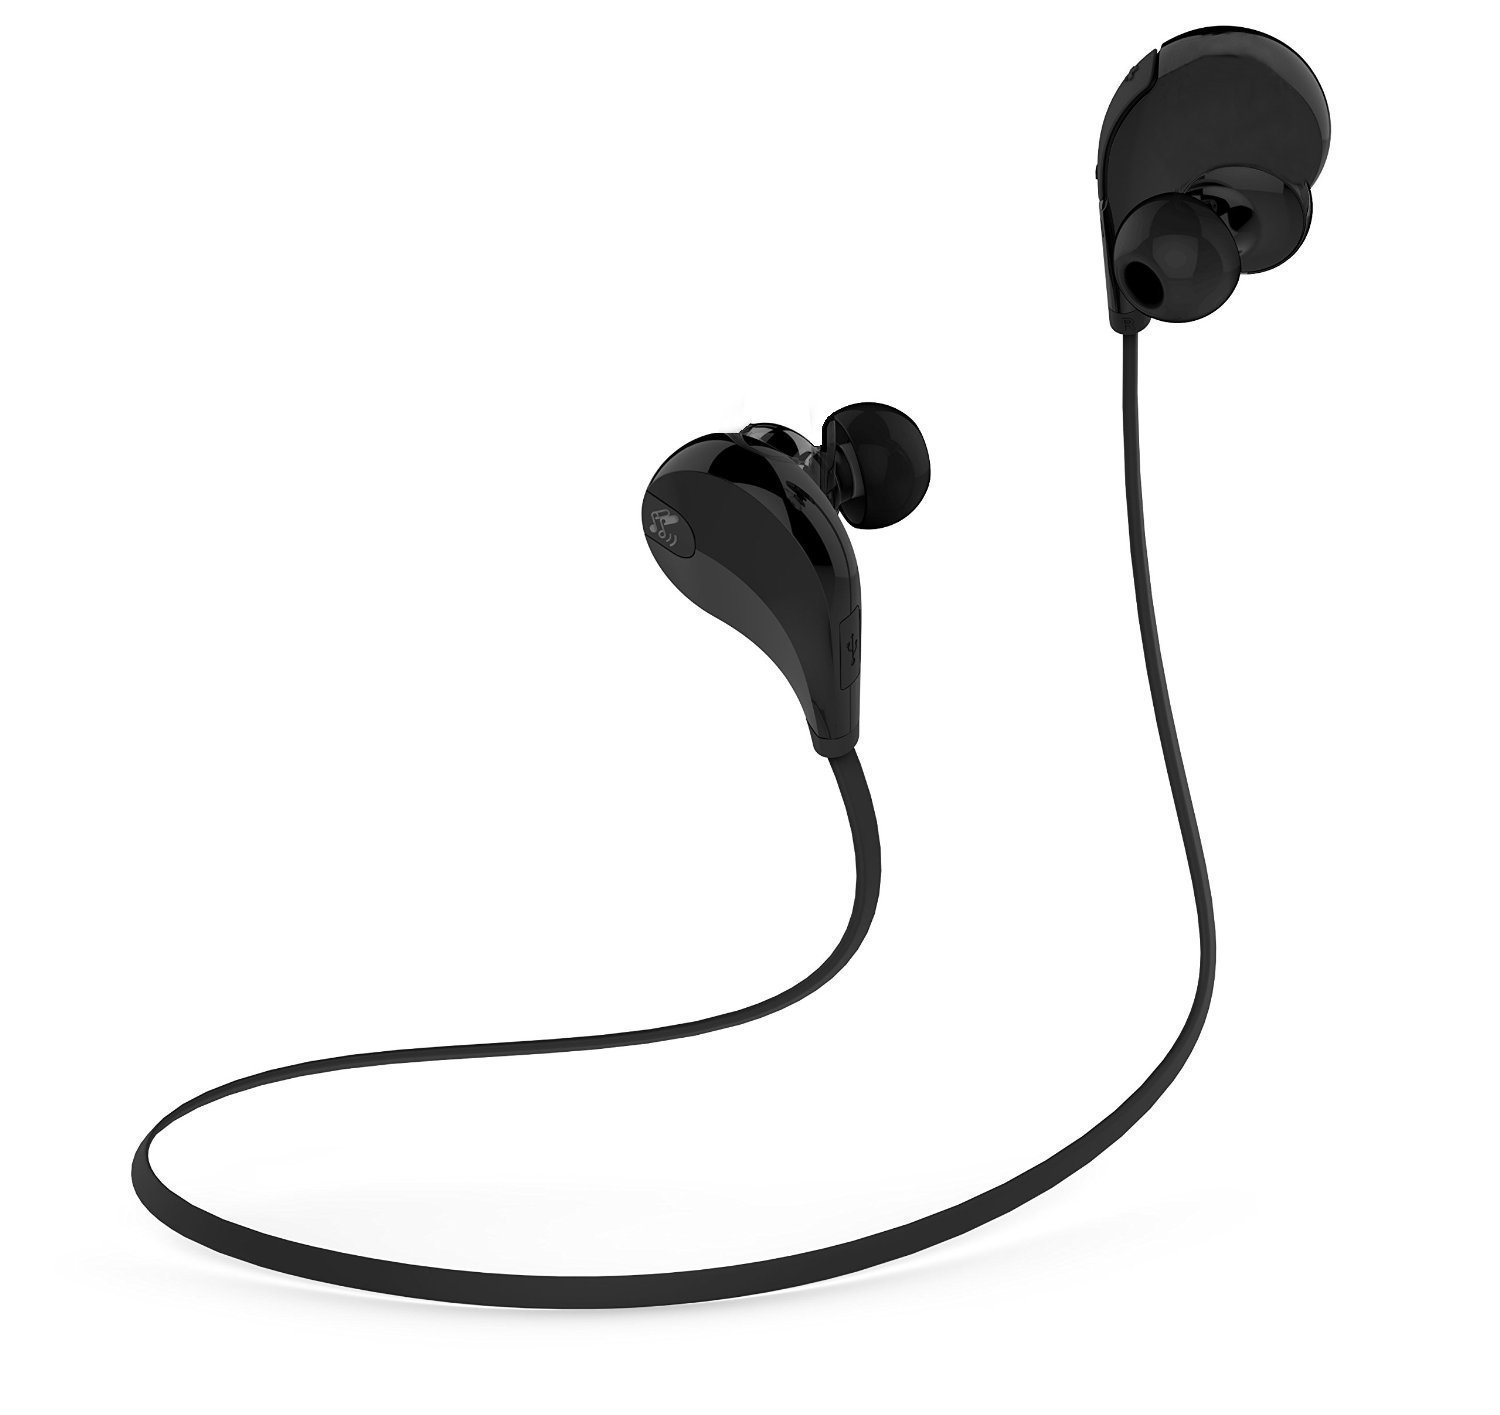 one of those best cheap bluetooth earbuds is definitely the SoundPEATS QY7